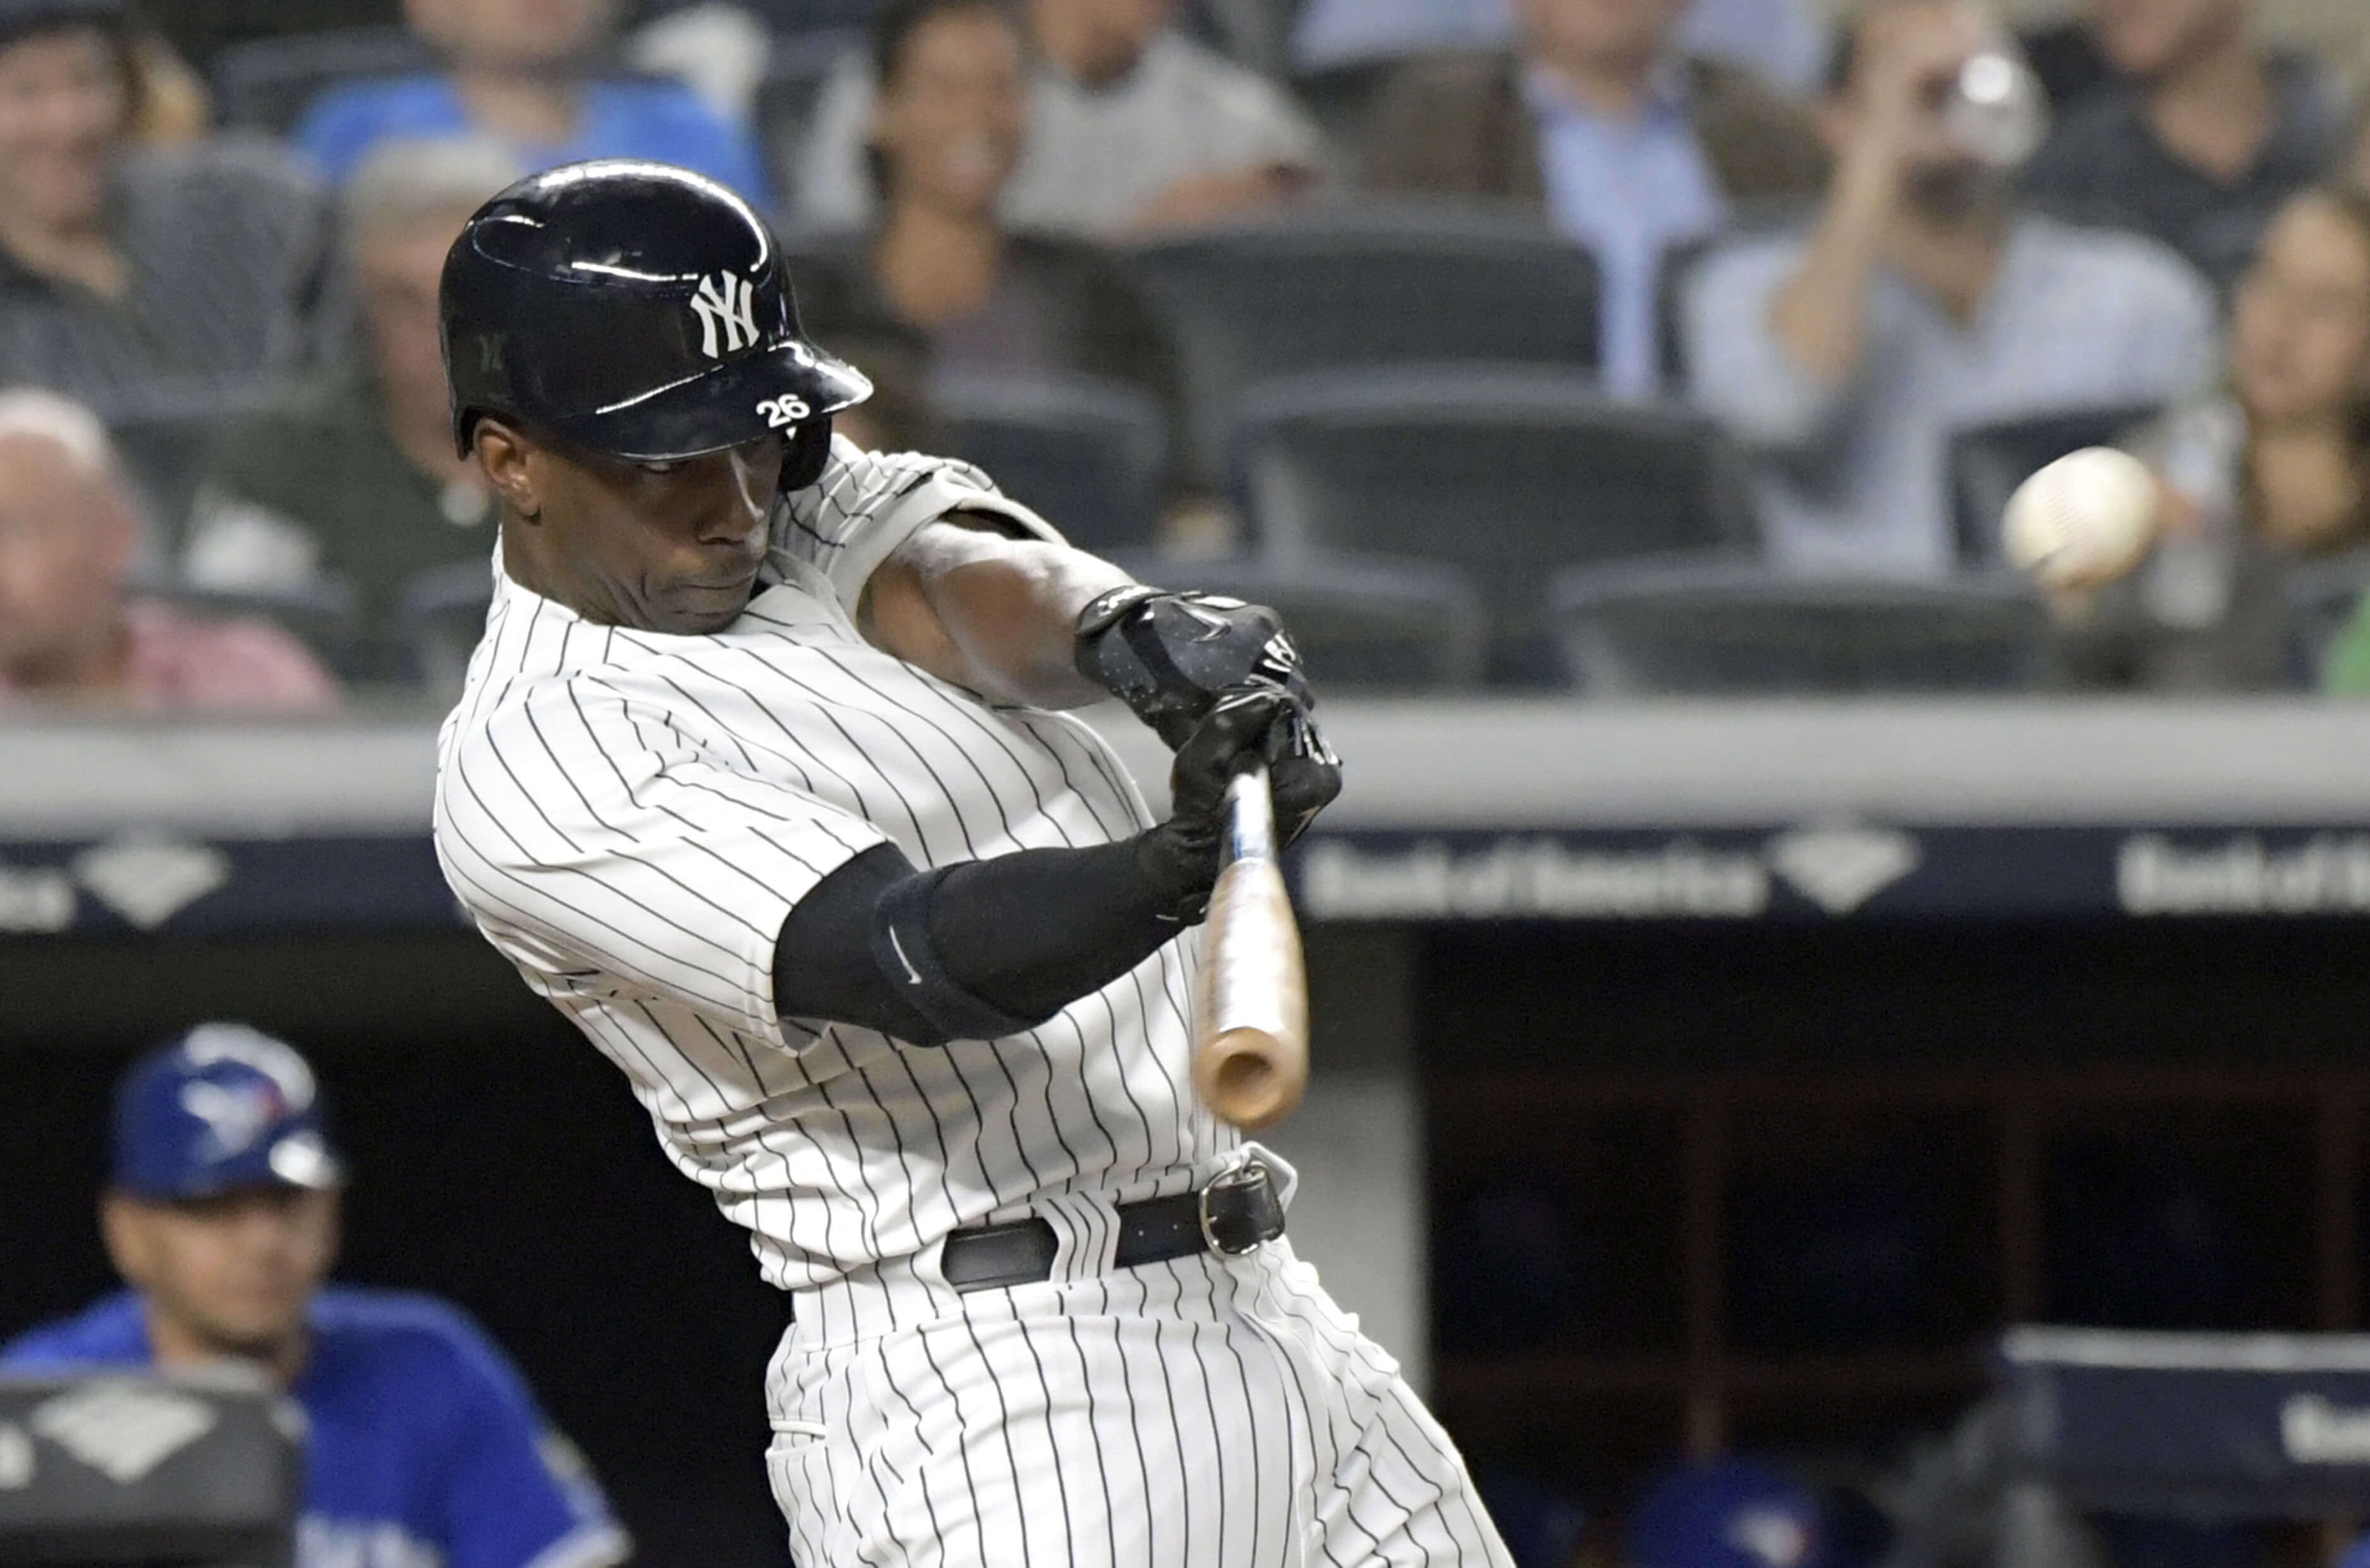 Andrew McCutchen hits a home run for the New York Yankees during a Sept. 14 game against the Toronto Blue Jays at Yankee Stadium.